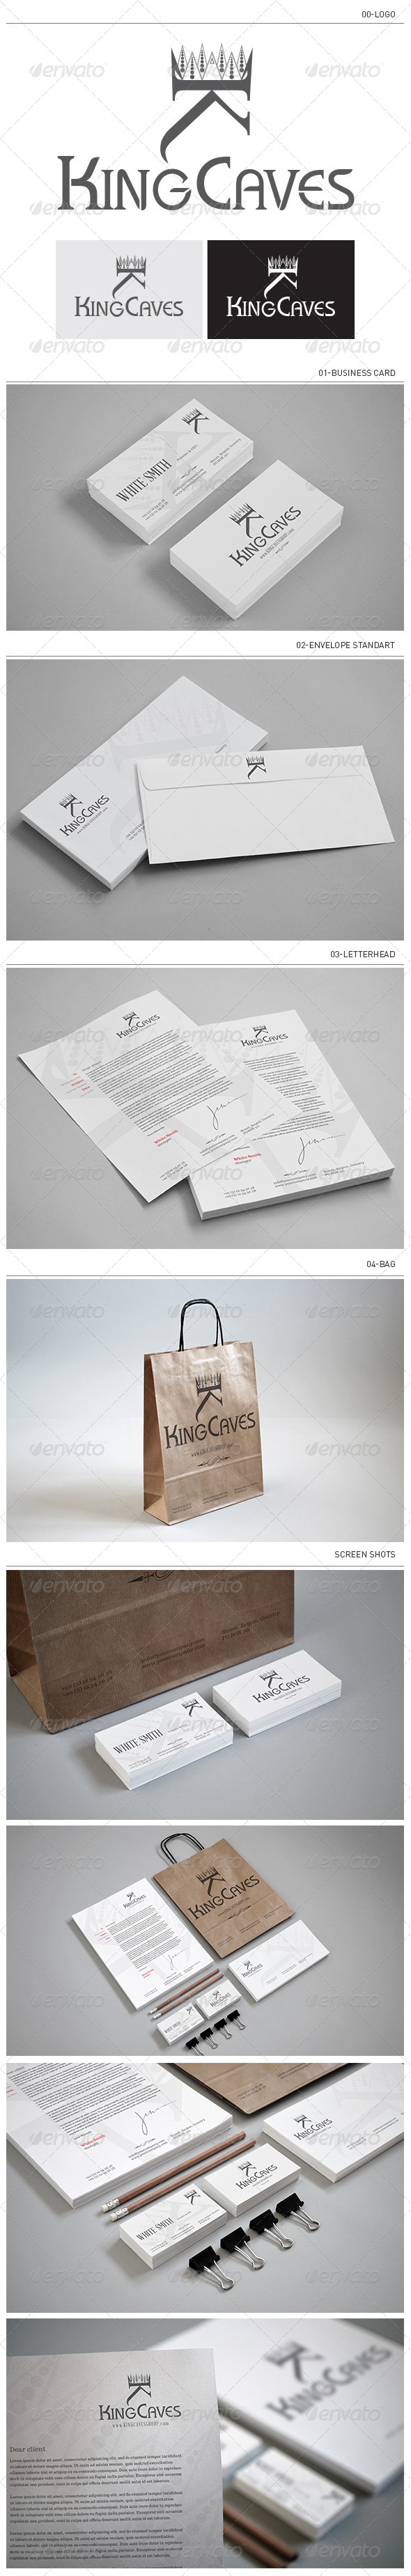 GraphicRiver King Caves Corporate Identity 4641895